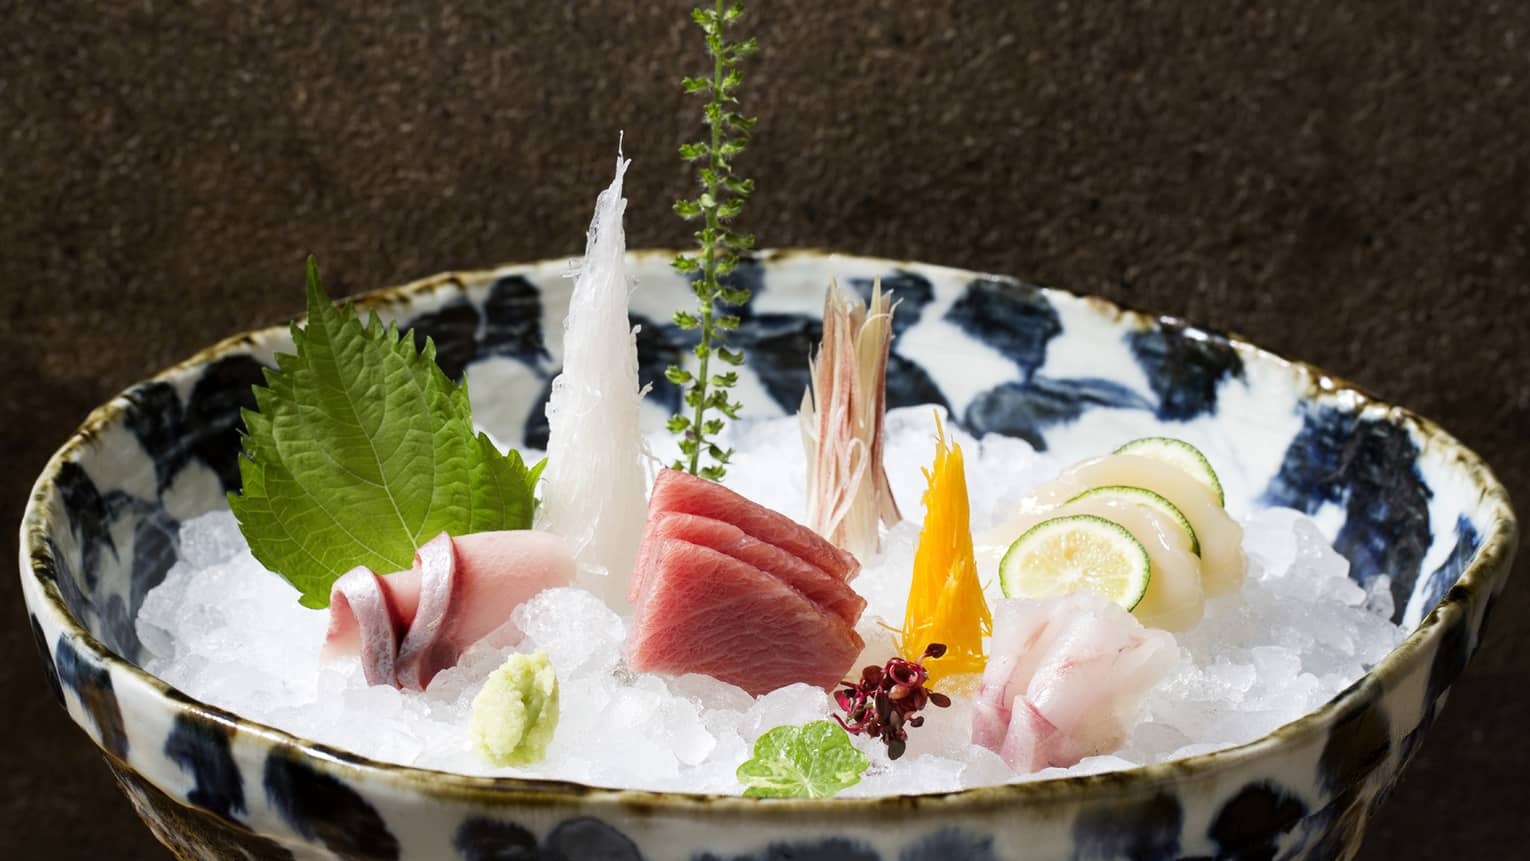 Sashimi Platter from Zuma, served in an blue and white bowl